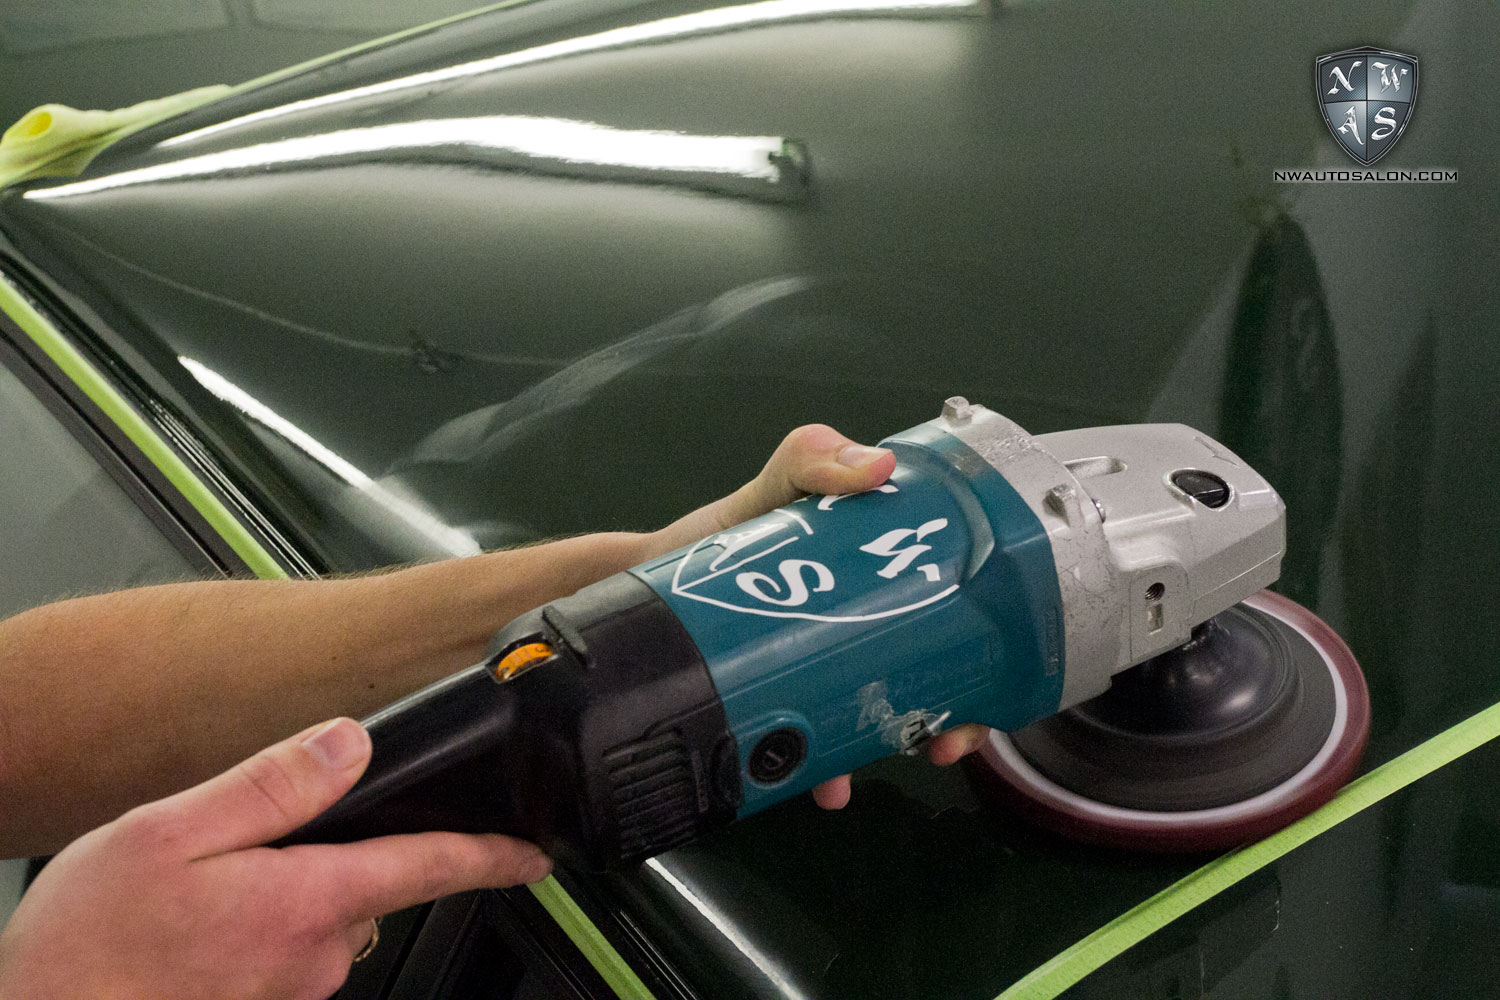 Mill Creek Auto Detailing NorthWest Auto Salon Motoring Unlimited Audi Sport Quattro Green